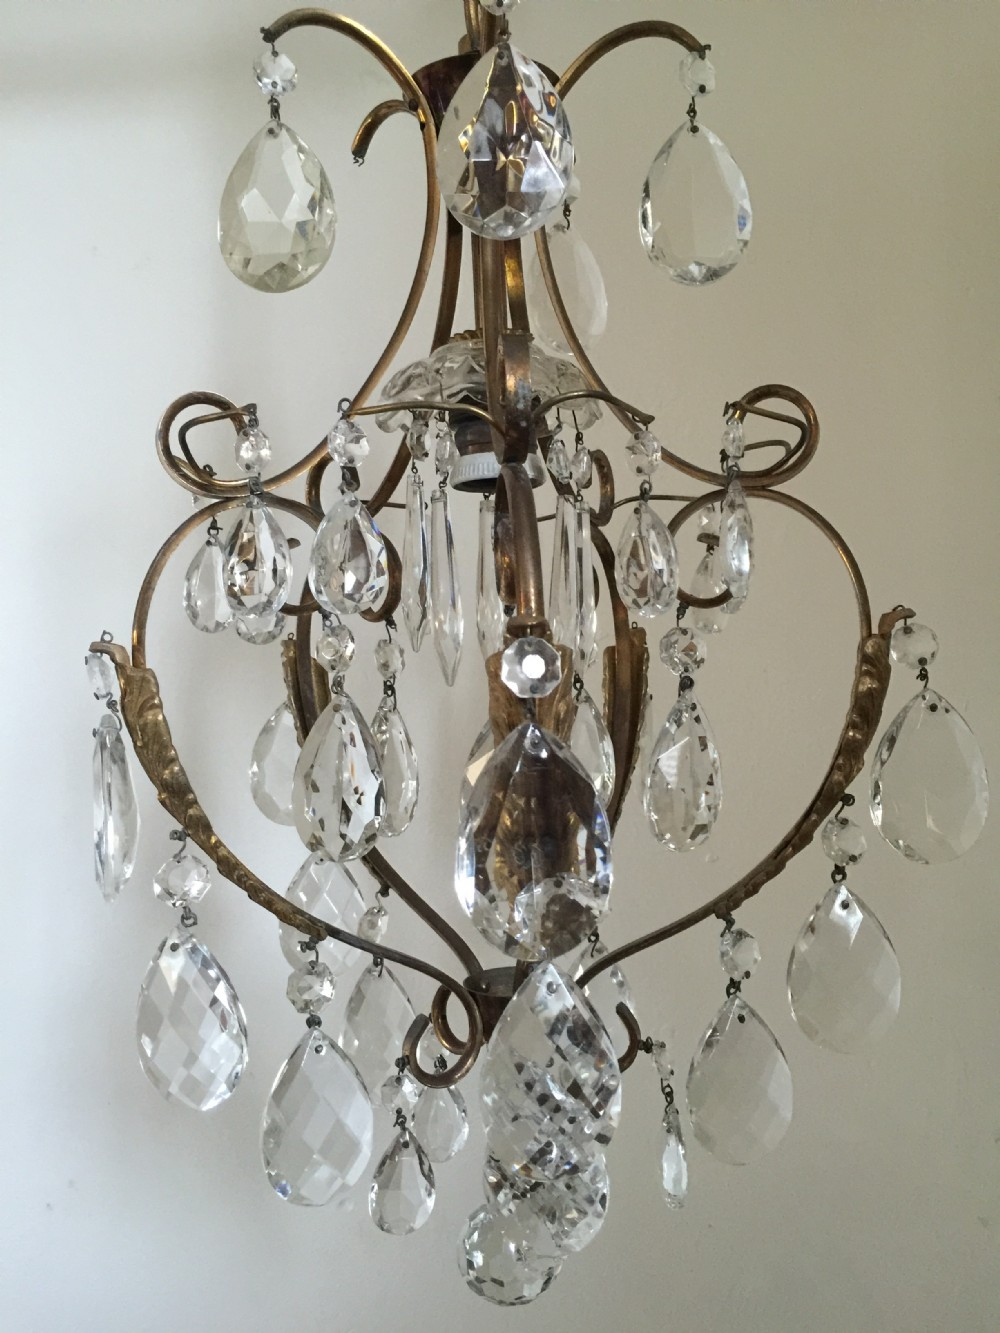 small antique italian one light chandelier - Small Antique Italian One Light Chandelier 379604